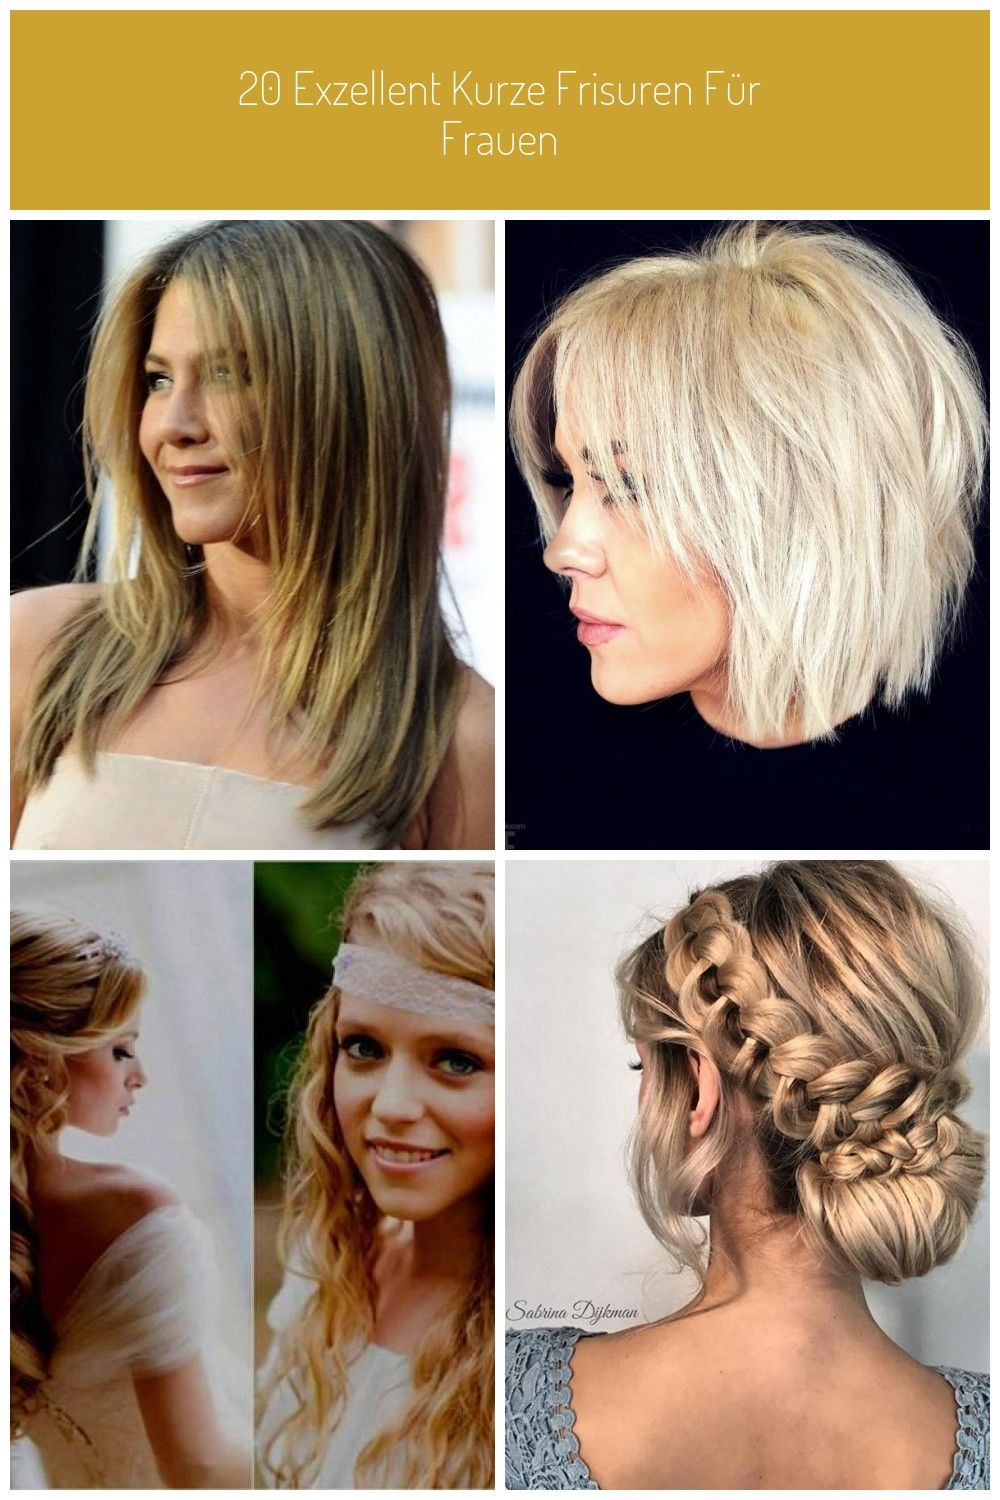 All Kinds of Hairstyles for Women Best Trends in 2020